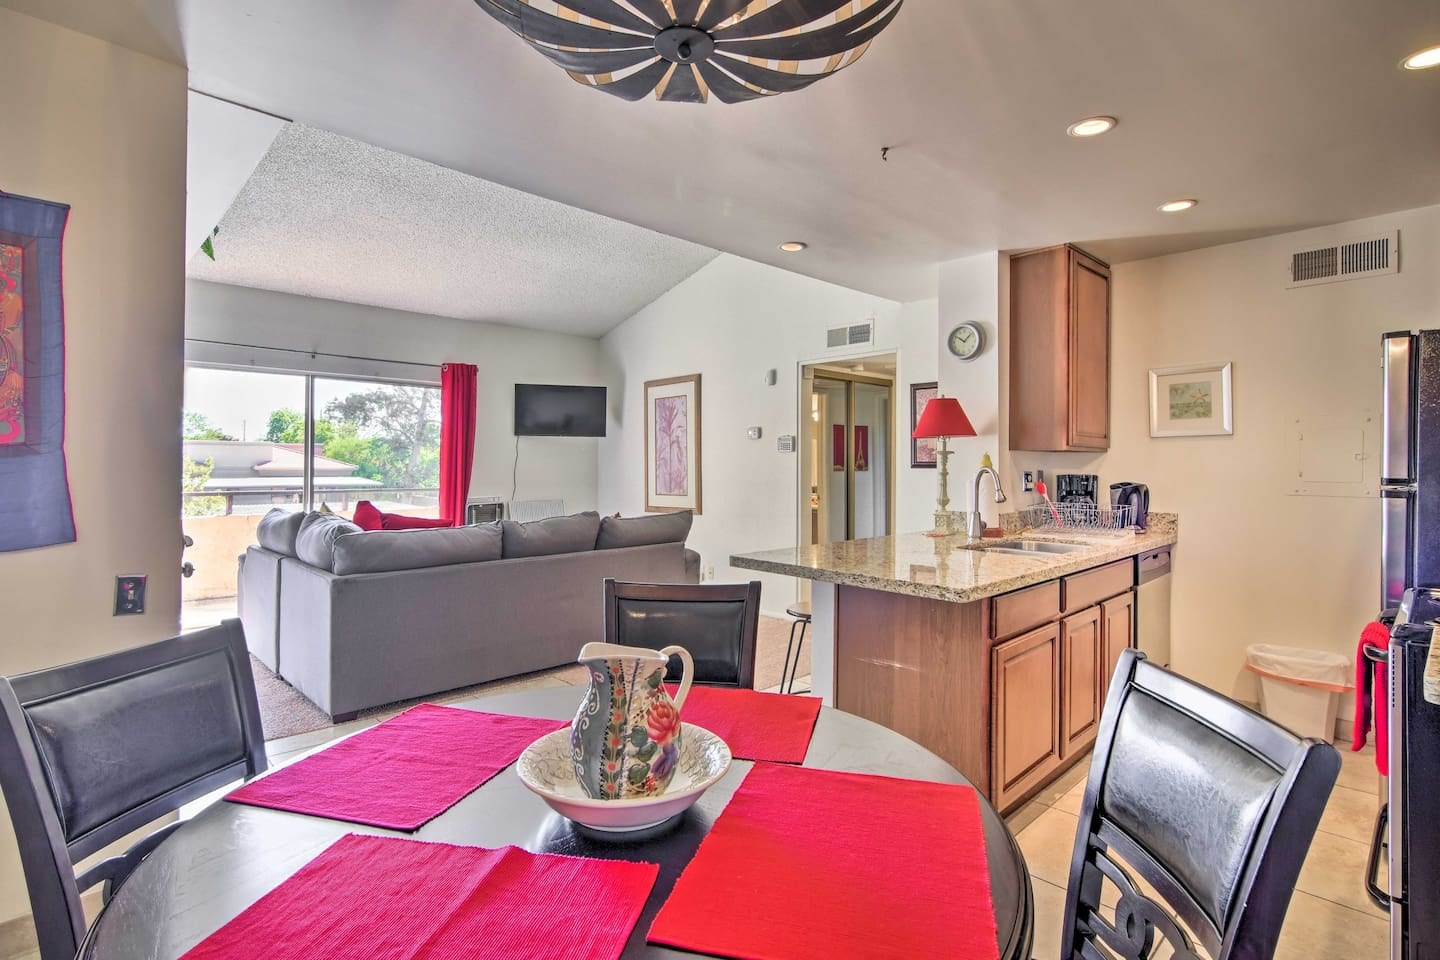 Book a trip to this lavish vacation rental condo in Scottsdale!